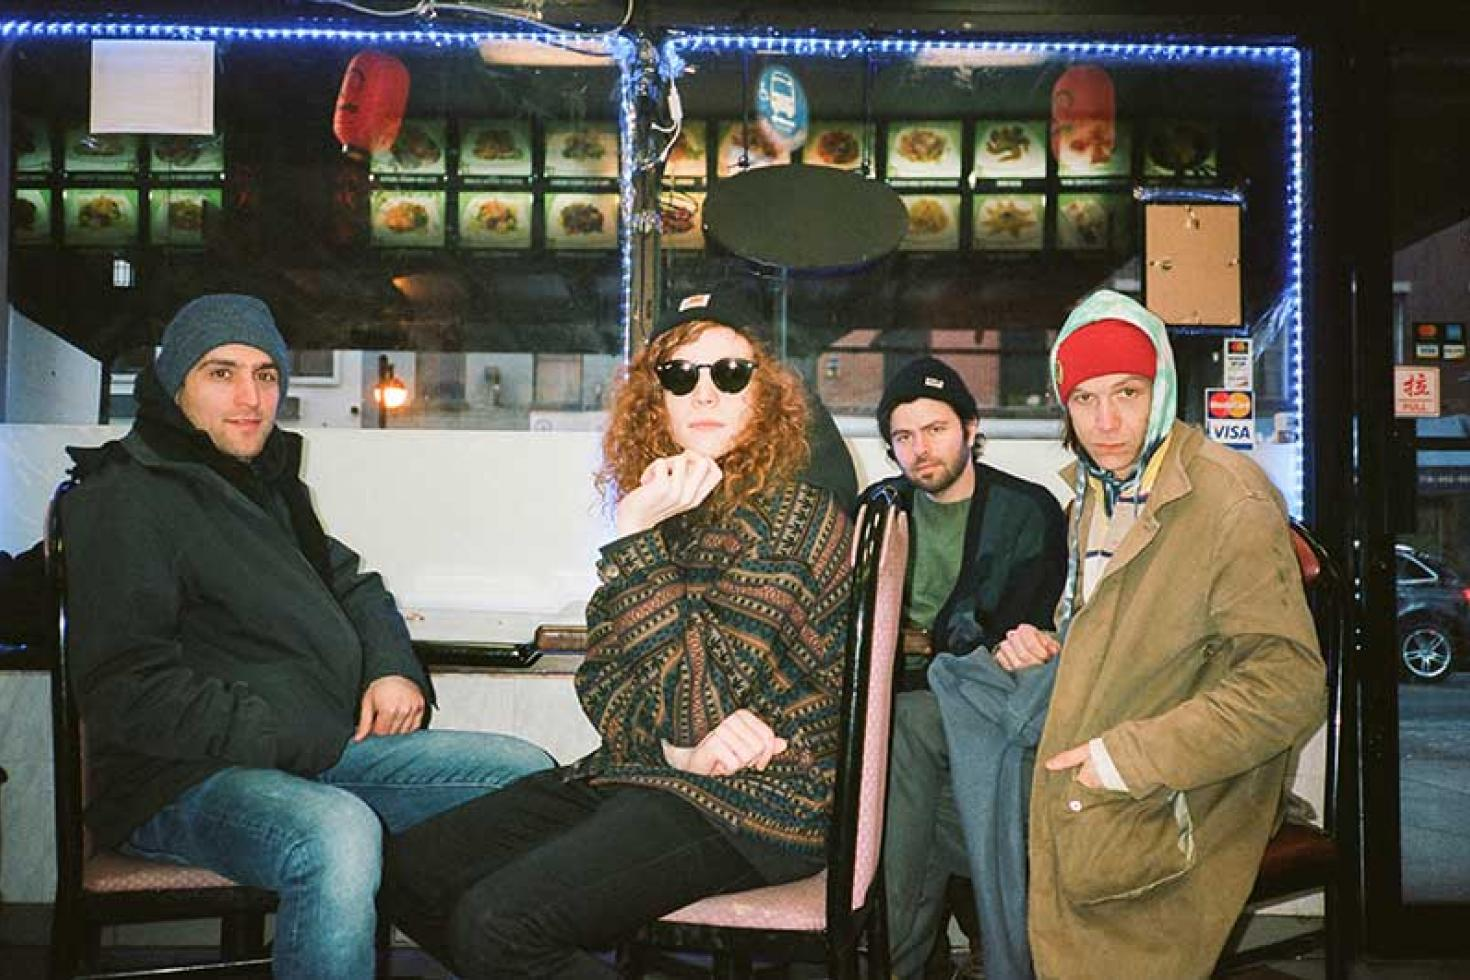 WIVES (ft. DIIV guitarist Andrew Bailey) release new track